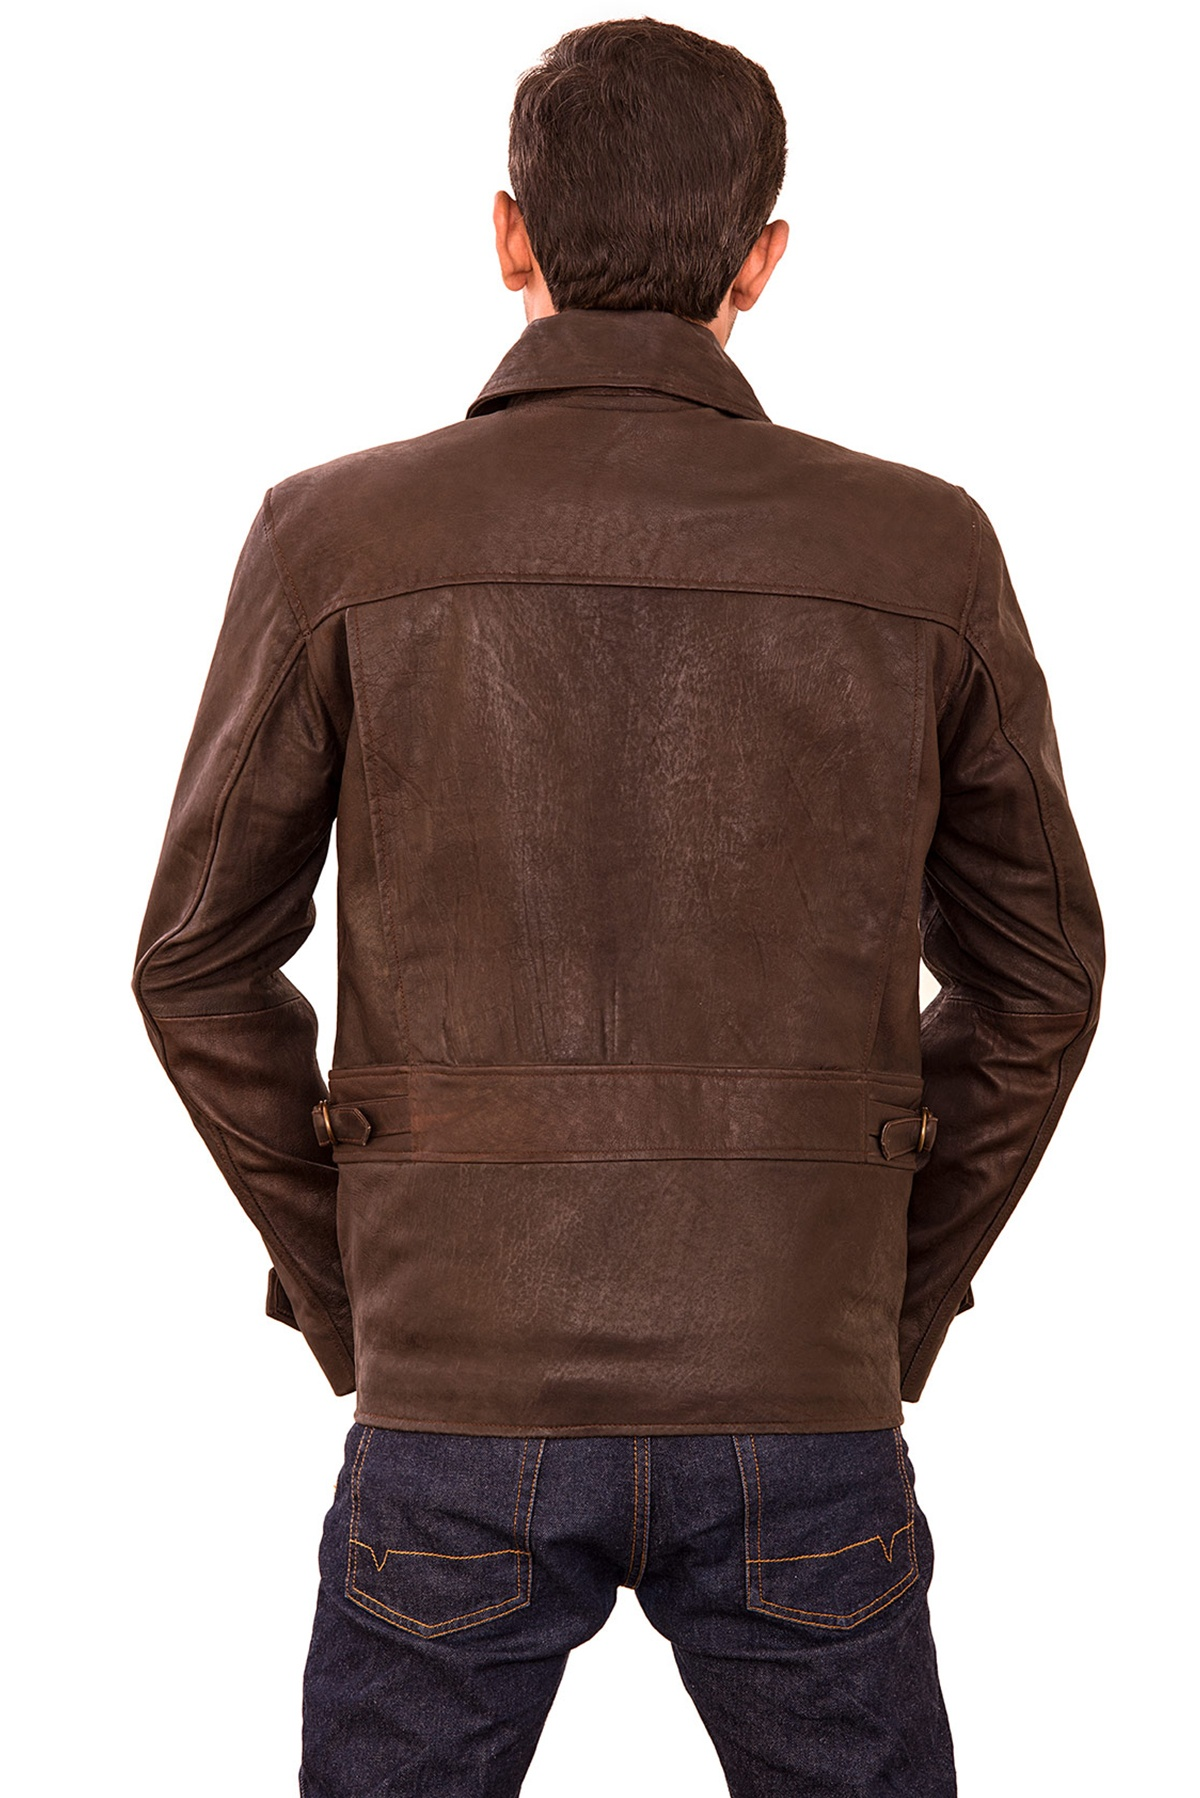 how much is a leather jacket worth